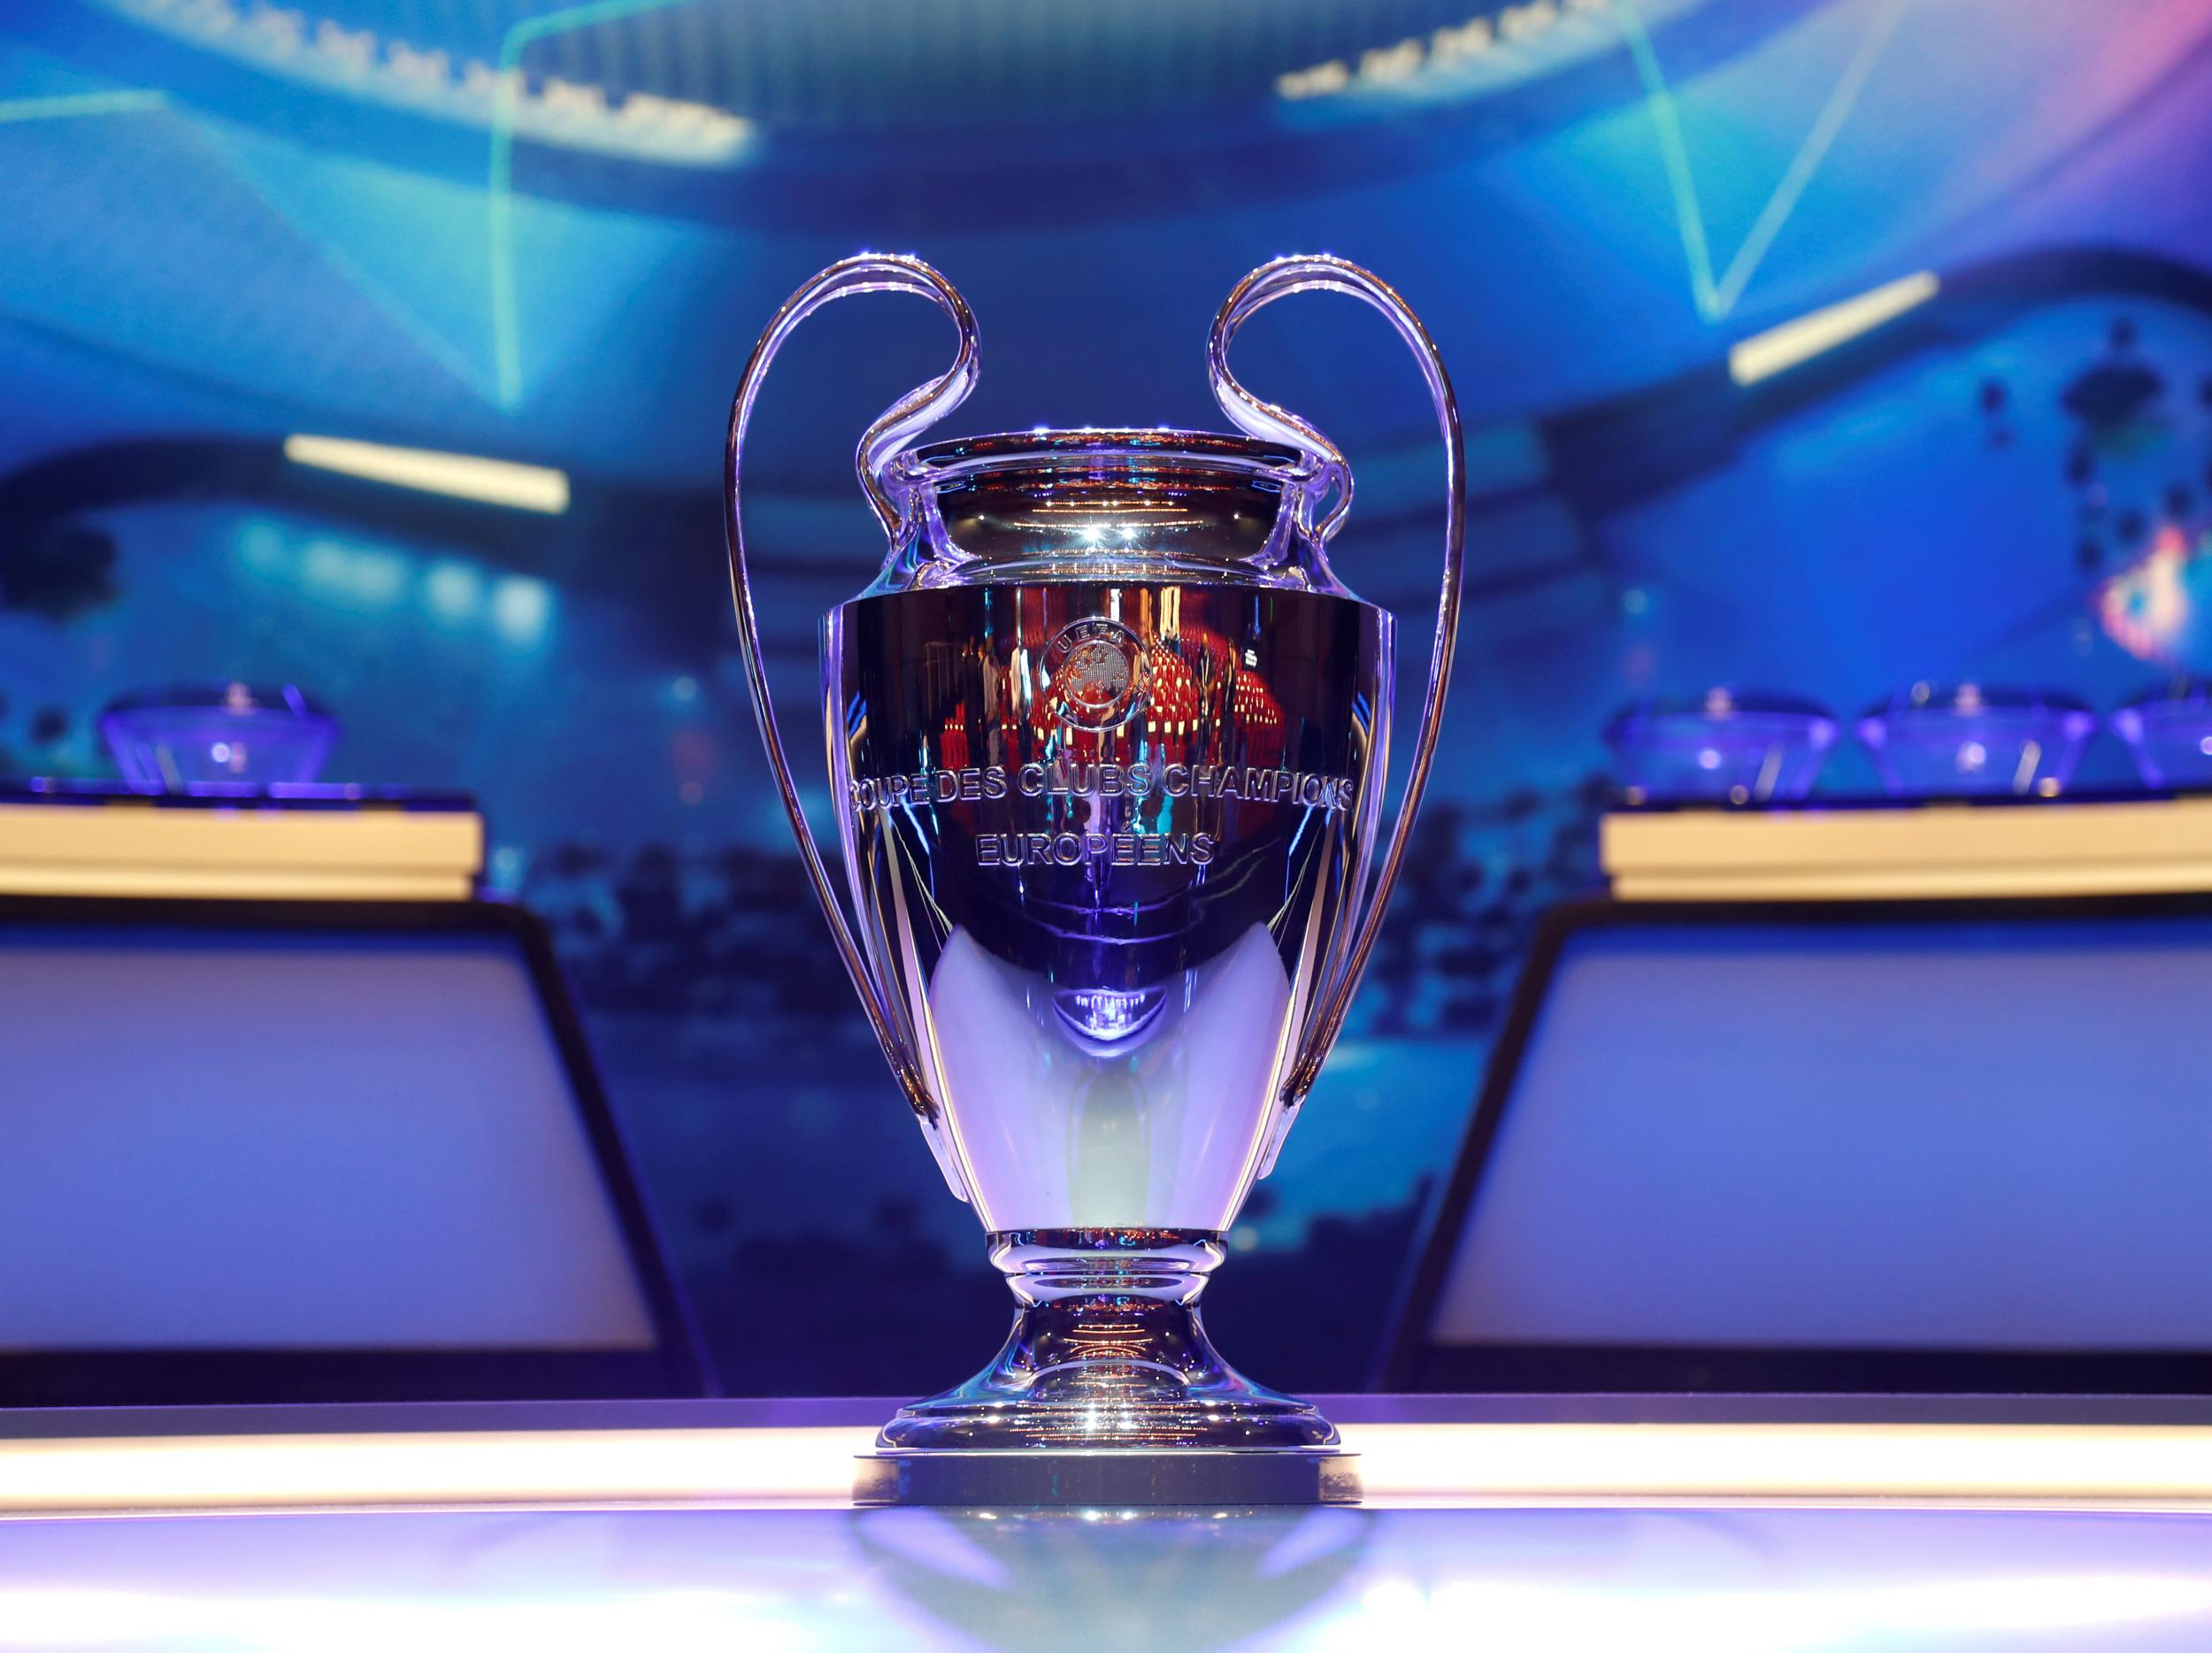 Champions League draw live stream: Watch Uefa group stage ceremony online and TV channel info